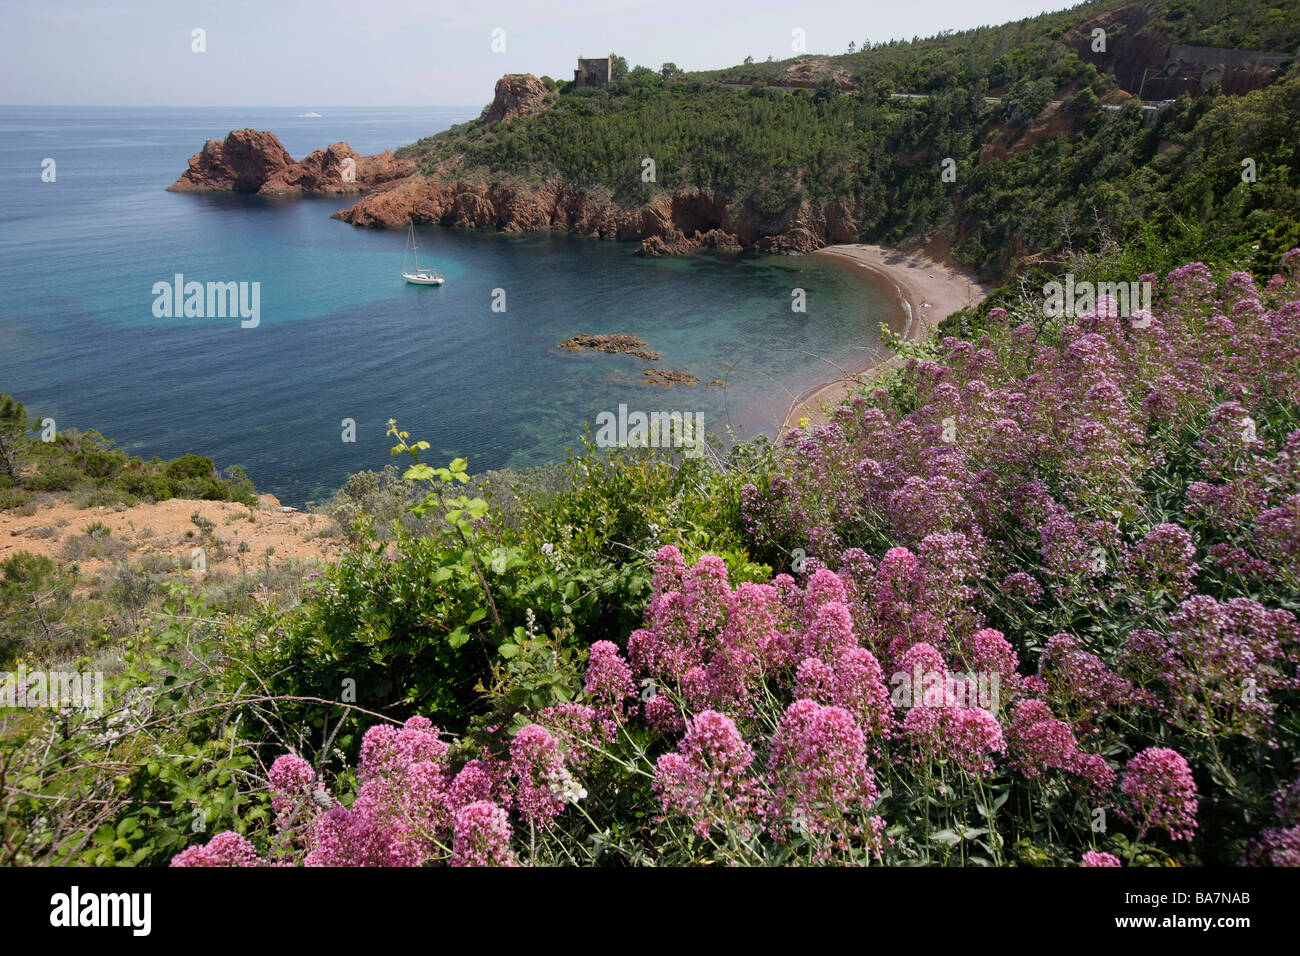 View of the beach and coastal landscape at Cap Roux, Cote d'Azur, Provence, France - Stock Image